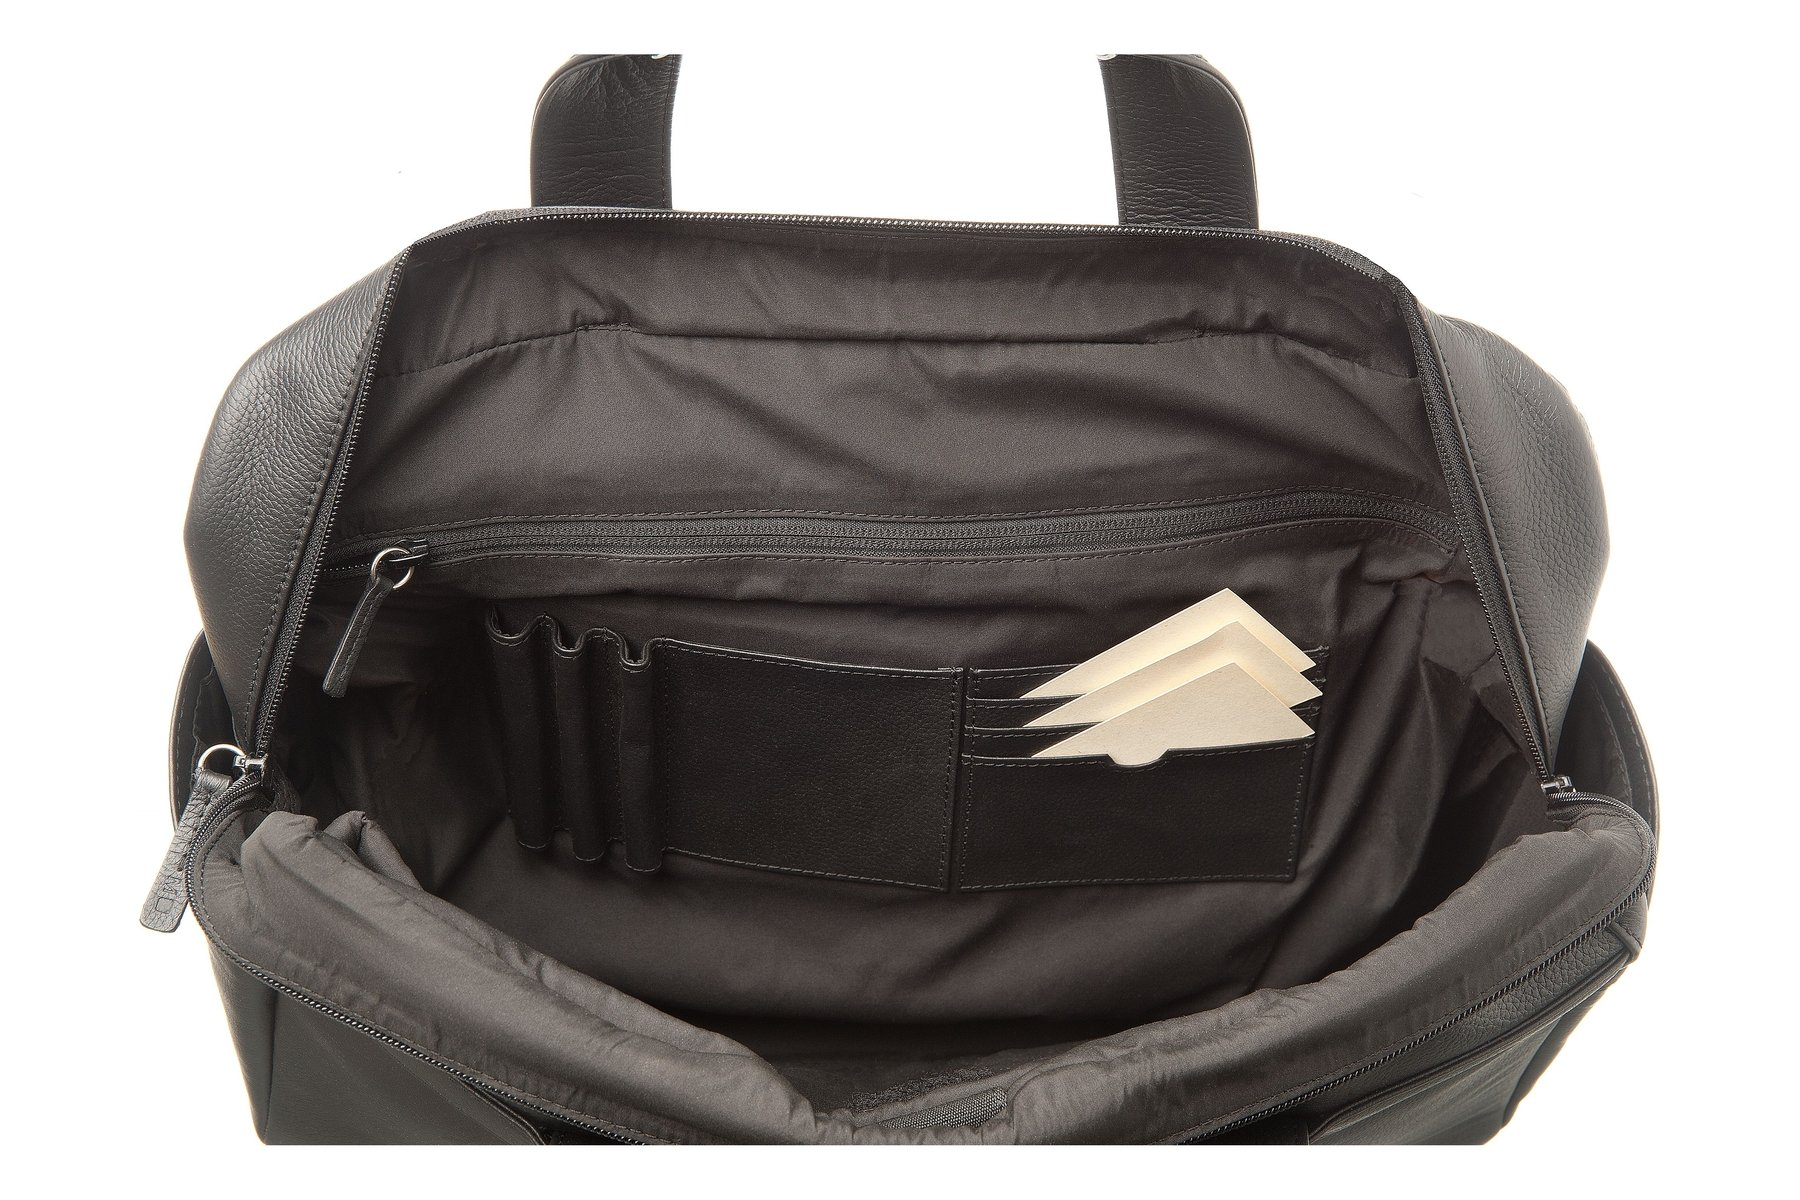 Moleskine Classic Leather Utility Bag, Black, For Work, School, Travel, and Everyday Use, Space for Tablet Laptop and Chargers, Notebook Planner or Organizer, Padded Adjustable Straps, Secure Zipper by Moleskine (Image #7)